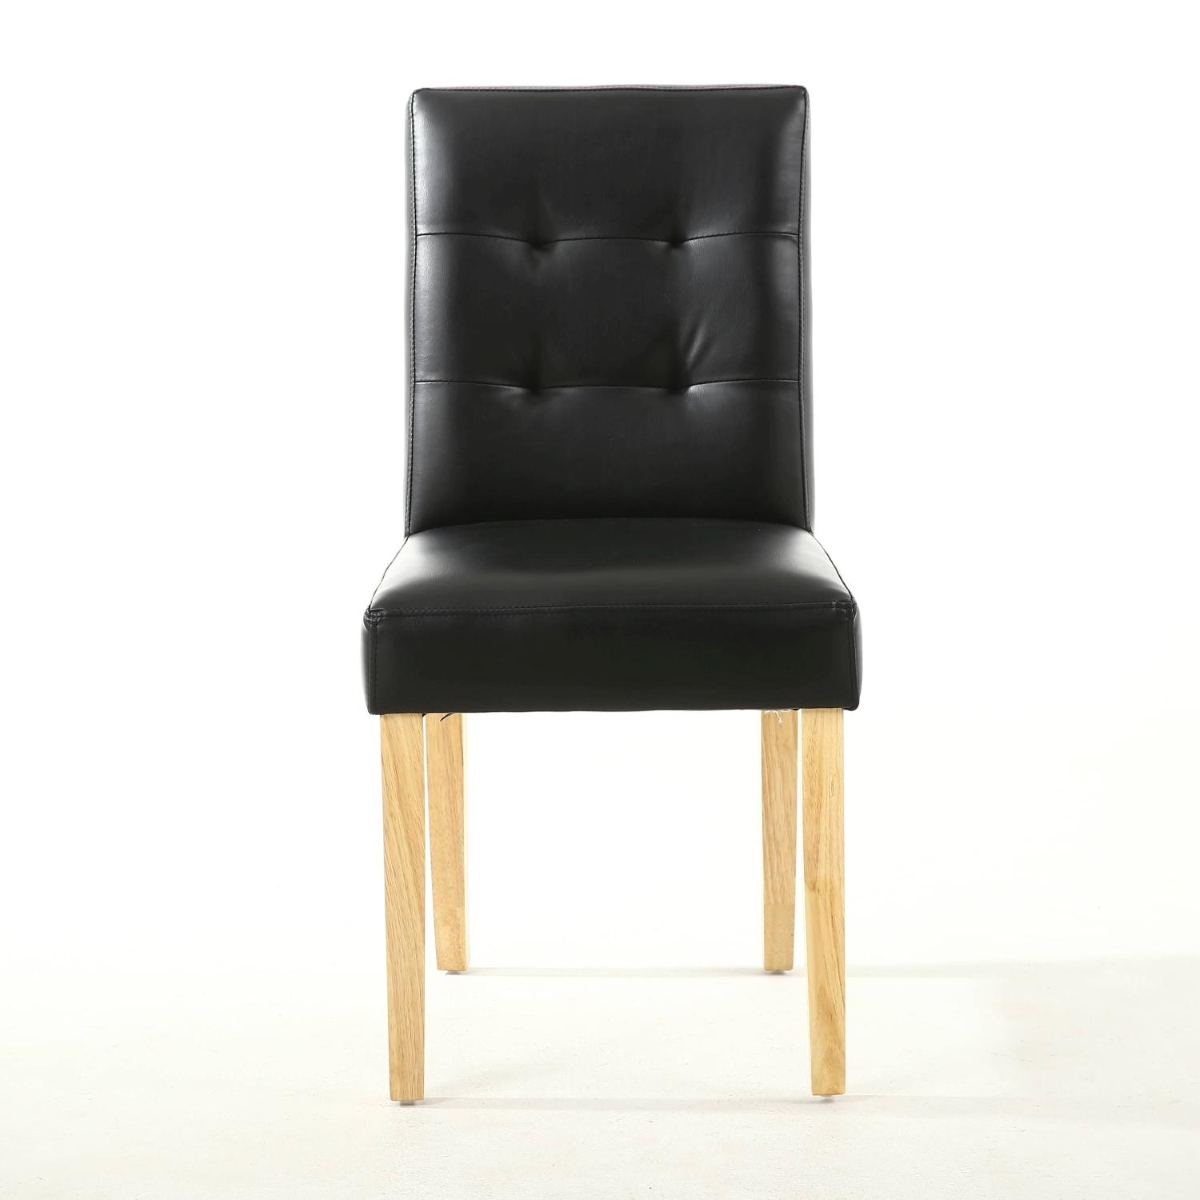 Dining Chairs Shankar Espresso Style 010 Black Bonded  : shankarespressodiningchair010 07 03 05 012 1200x1200 from www.121homefurniture.co.uk size 1200 x 1200 jpeg 218kB